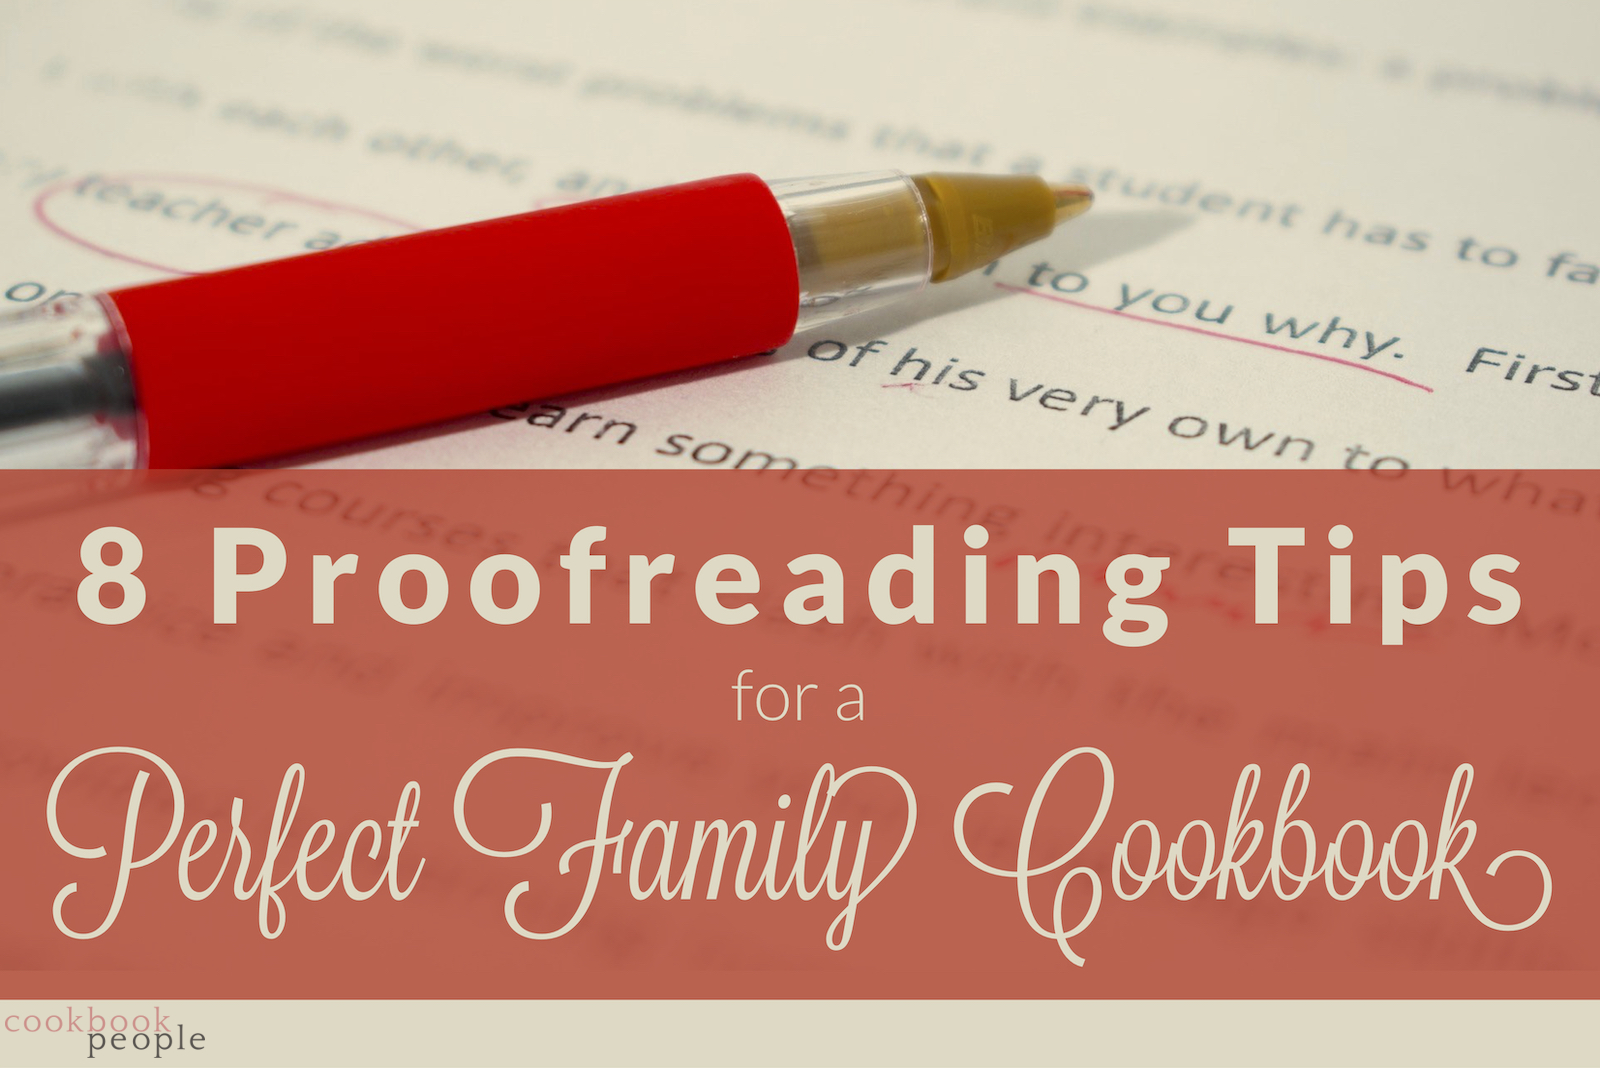 Red pen resting on printed sheet of text: 8 Proofreading Tips for a Perfect Family Cookbook